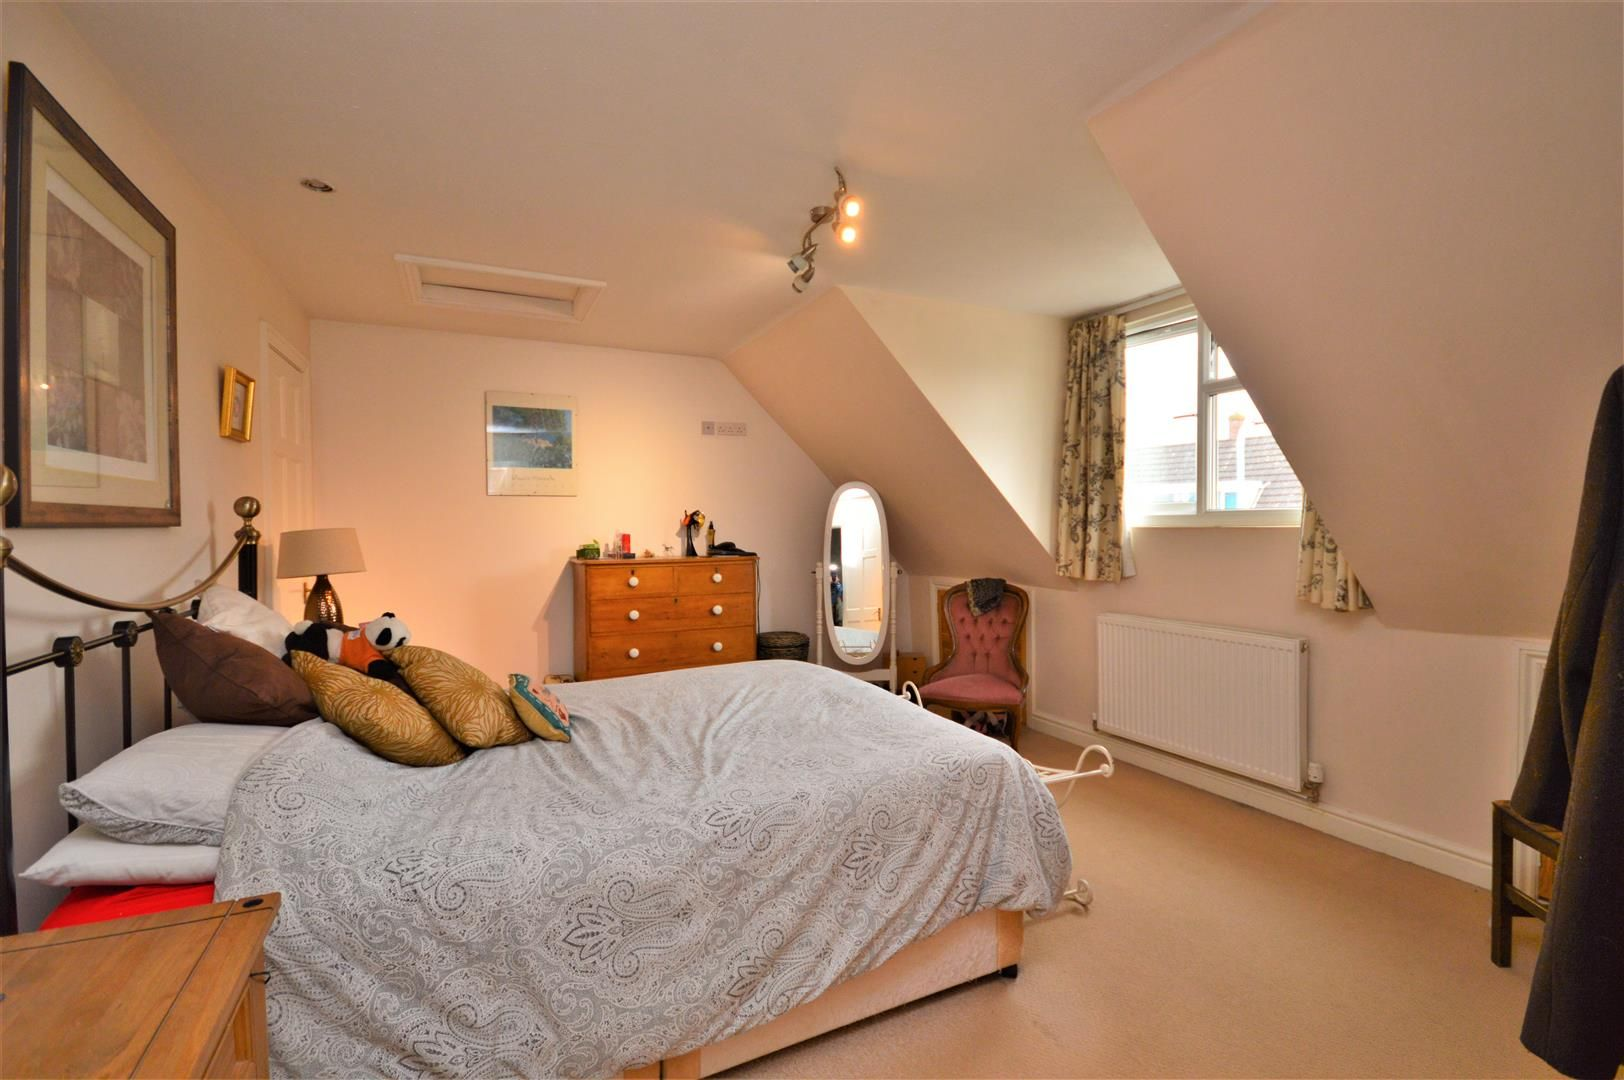 4 bed semi-detached for sale in Clehonger  - Property Image 10